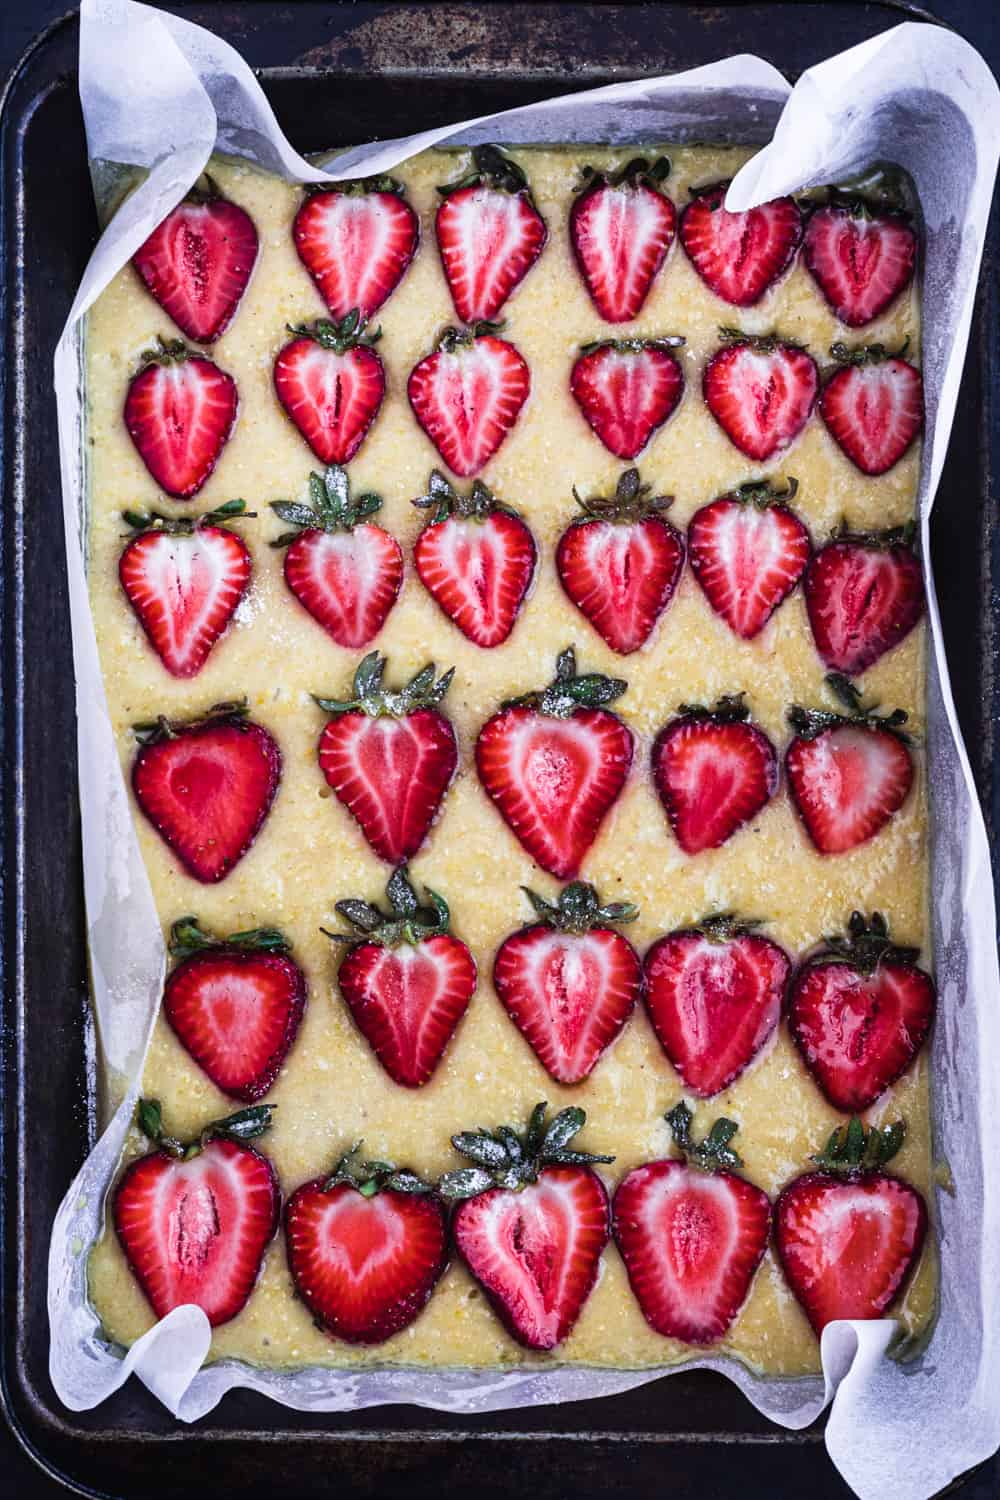 Up close, overhead shot of the strawberry snack cake, straight out of the oven.